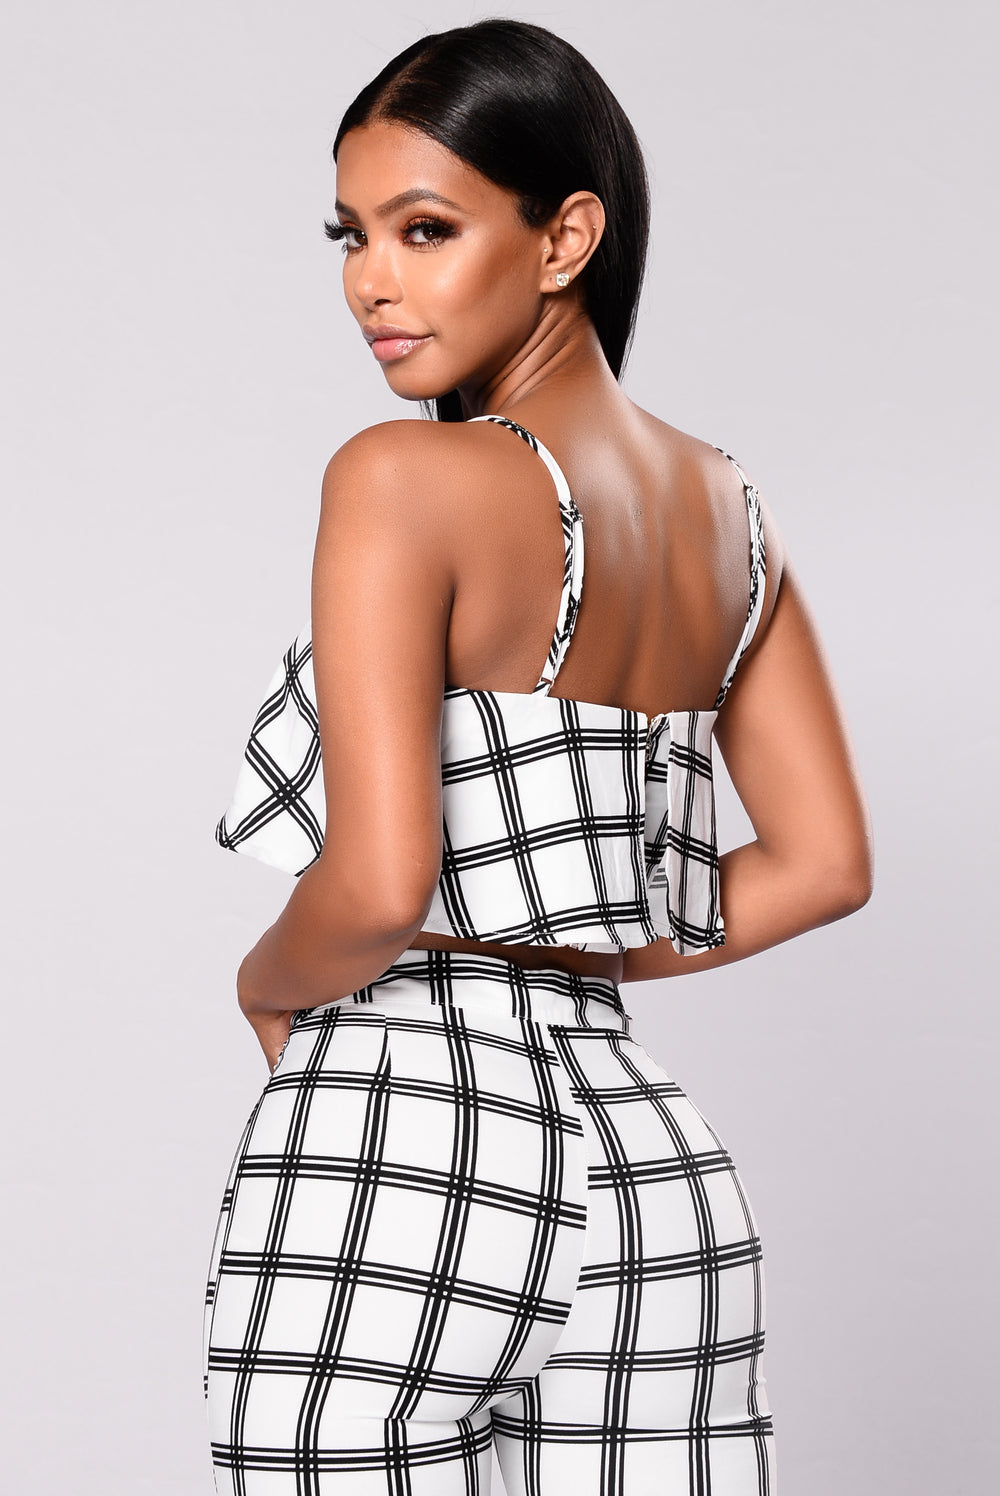 Get A Clue Plaid Set - White/Black